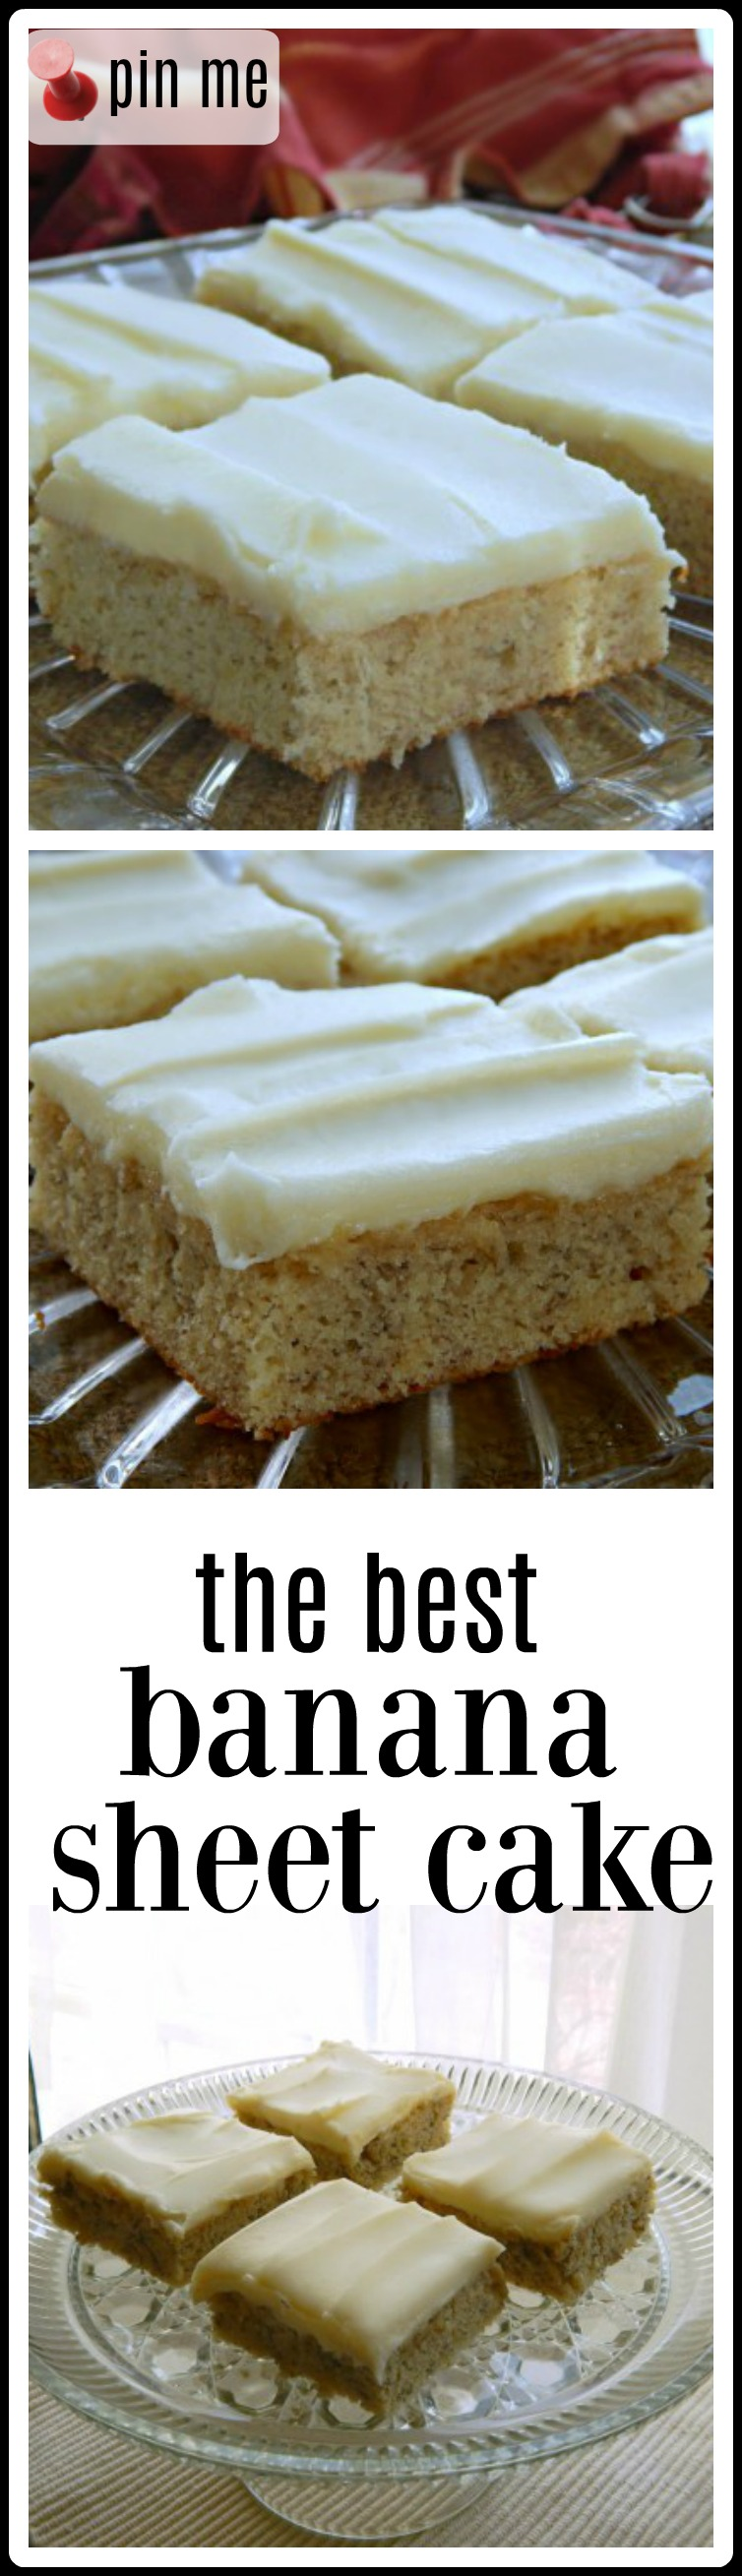 Banana Sheet Cake with Cream Cheese Frosting: It screams out good down-home cooking. It's rich, moist, bursting with banana flavor and topped with a (not too sweet) cream cheese frosting, #Banana Sheet Cake #Best Banana Sheet Cake